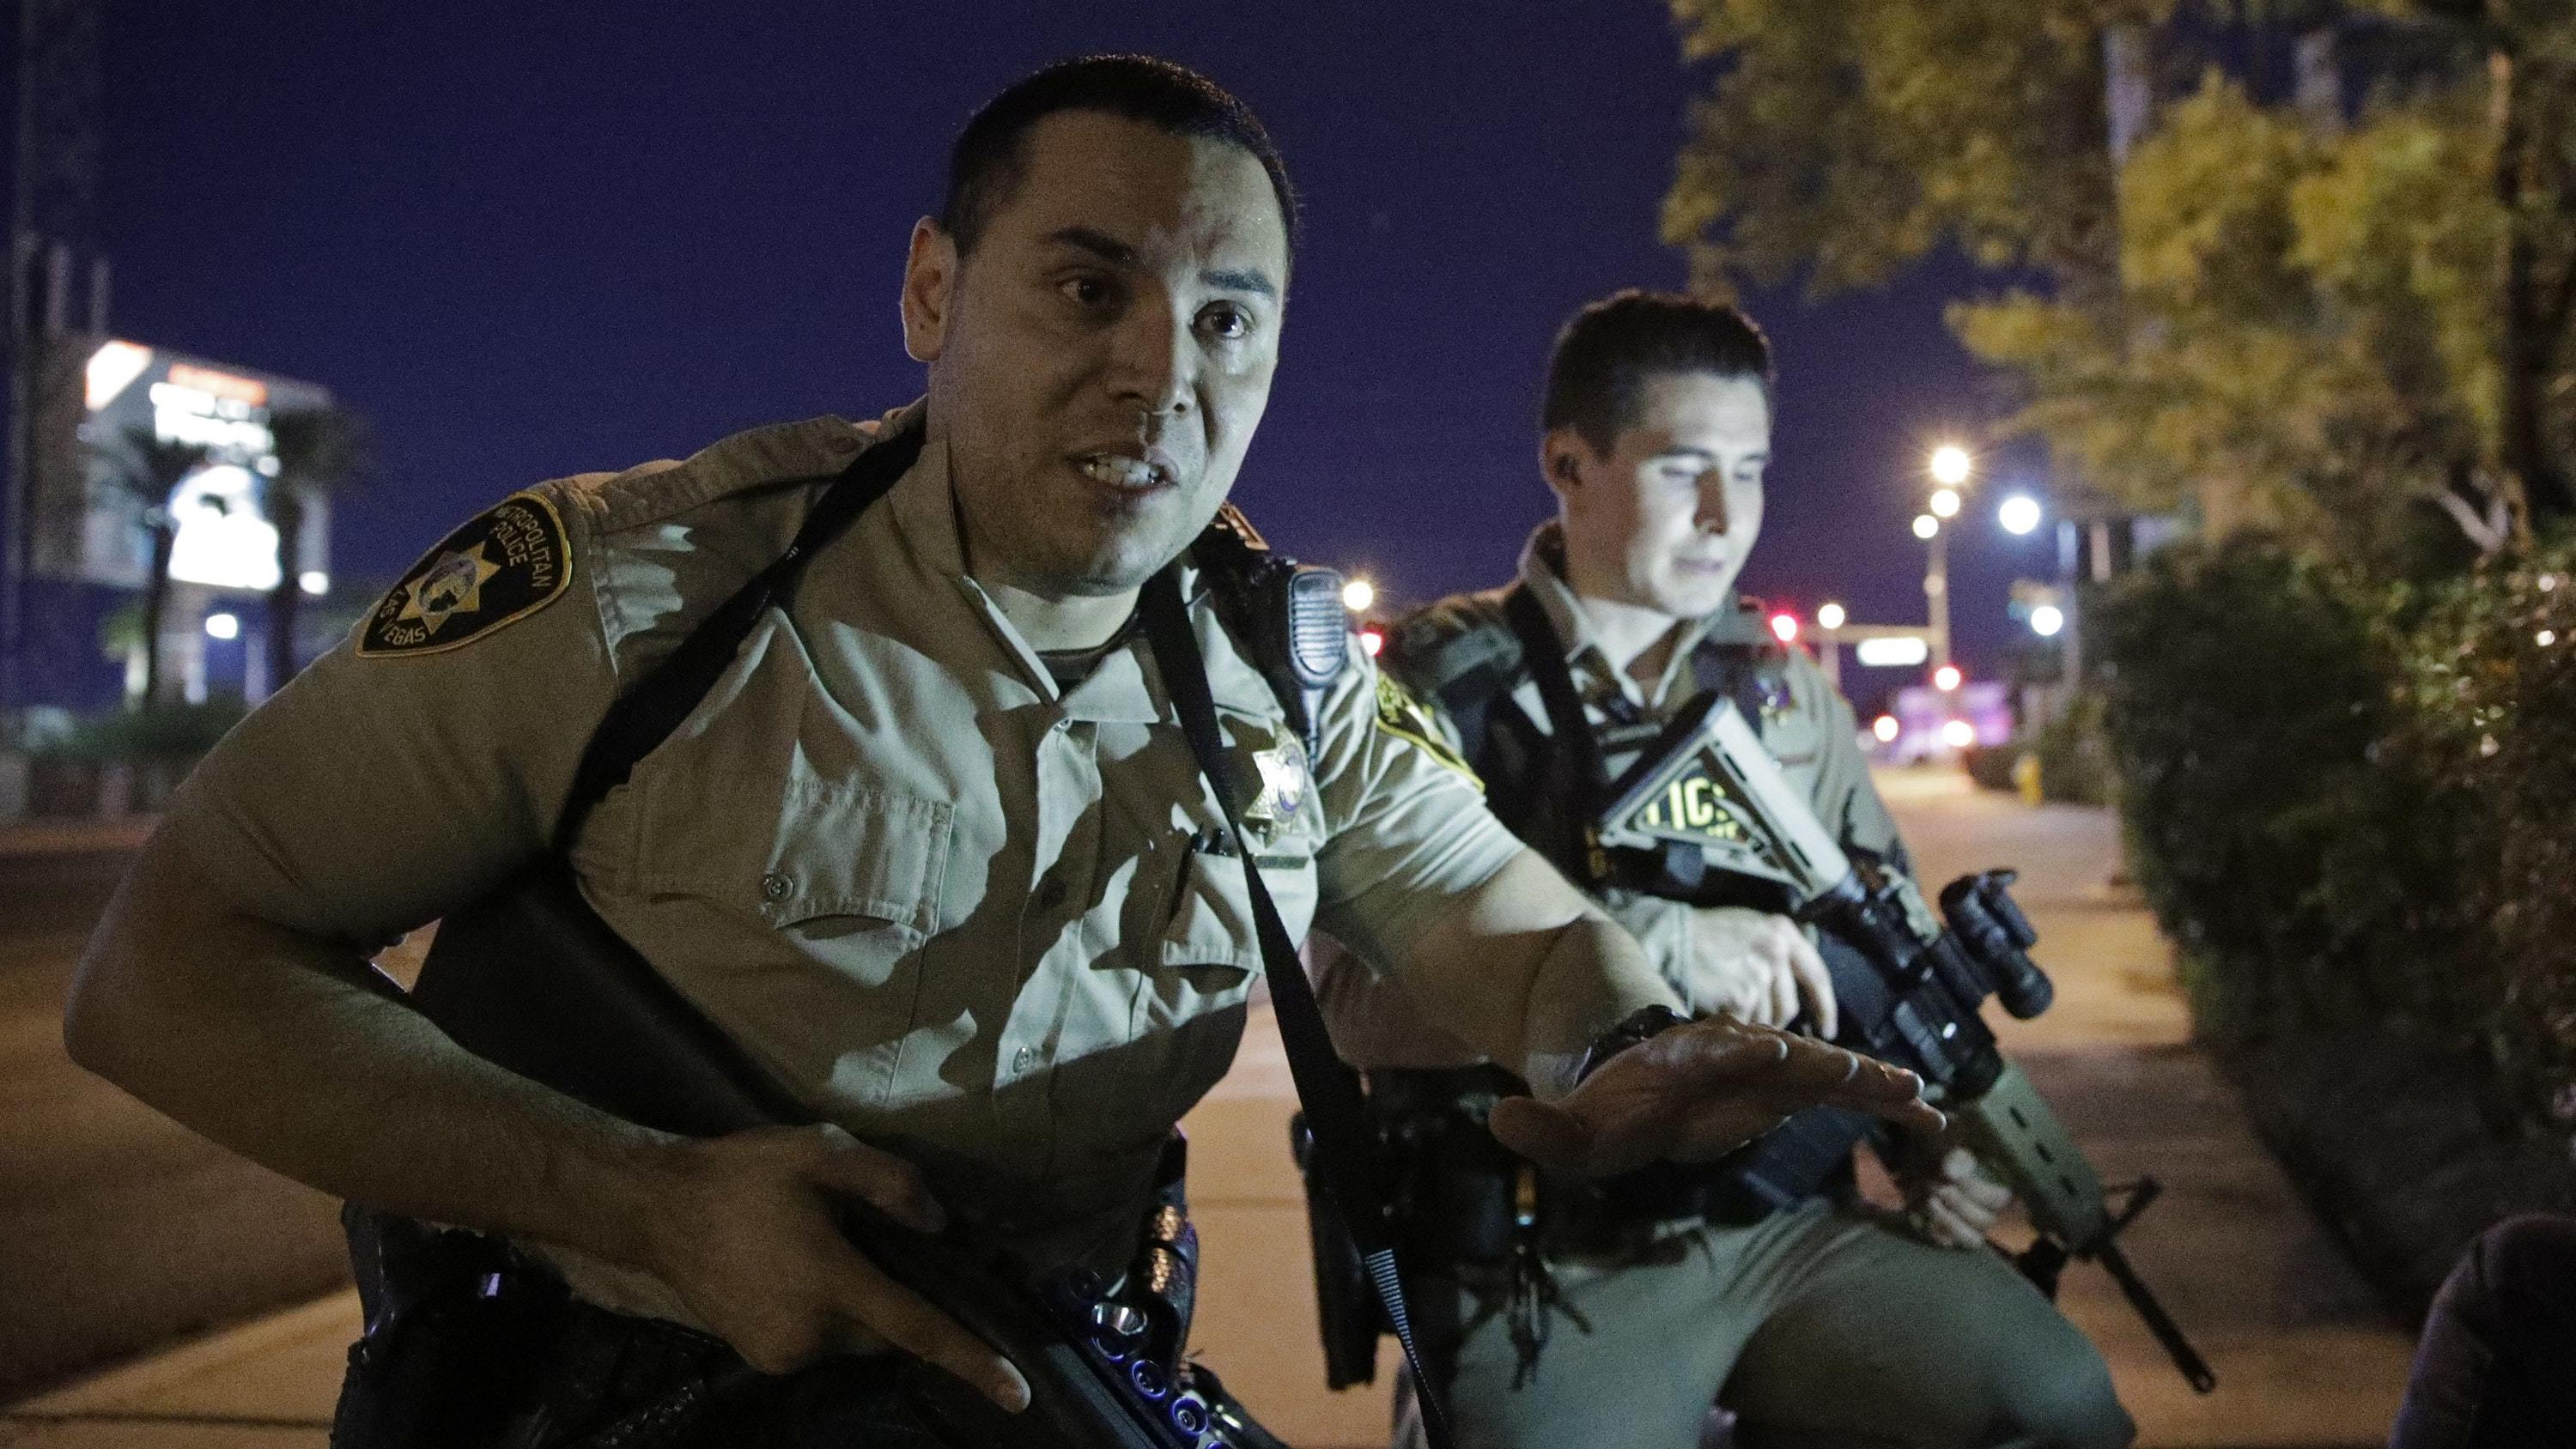 Police officers advise people to take cover near the scene of a shooting near the Mandalay Bay resort and casino on the Las Vegas Strip (John Locher/AP)